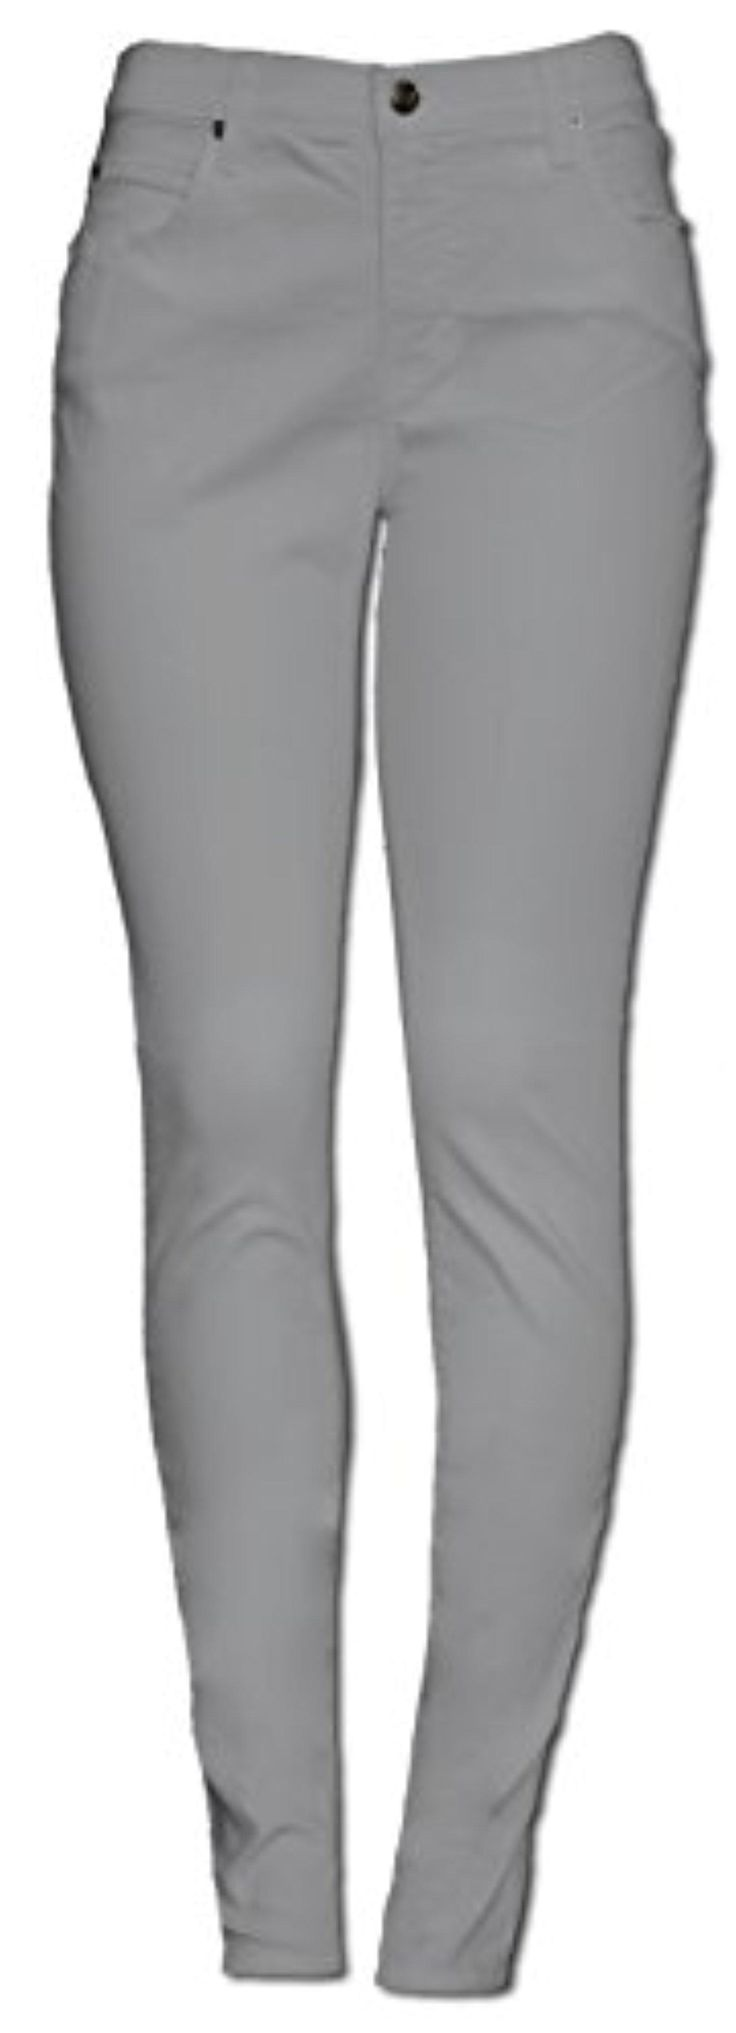 TrueSlim Jeans Women's Jeggings (16, Ash) - Brought to you by Avarsha.com